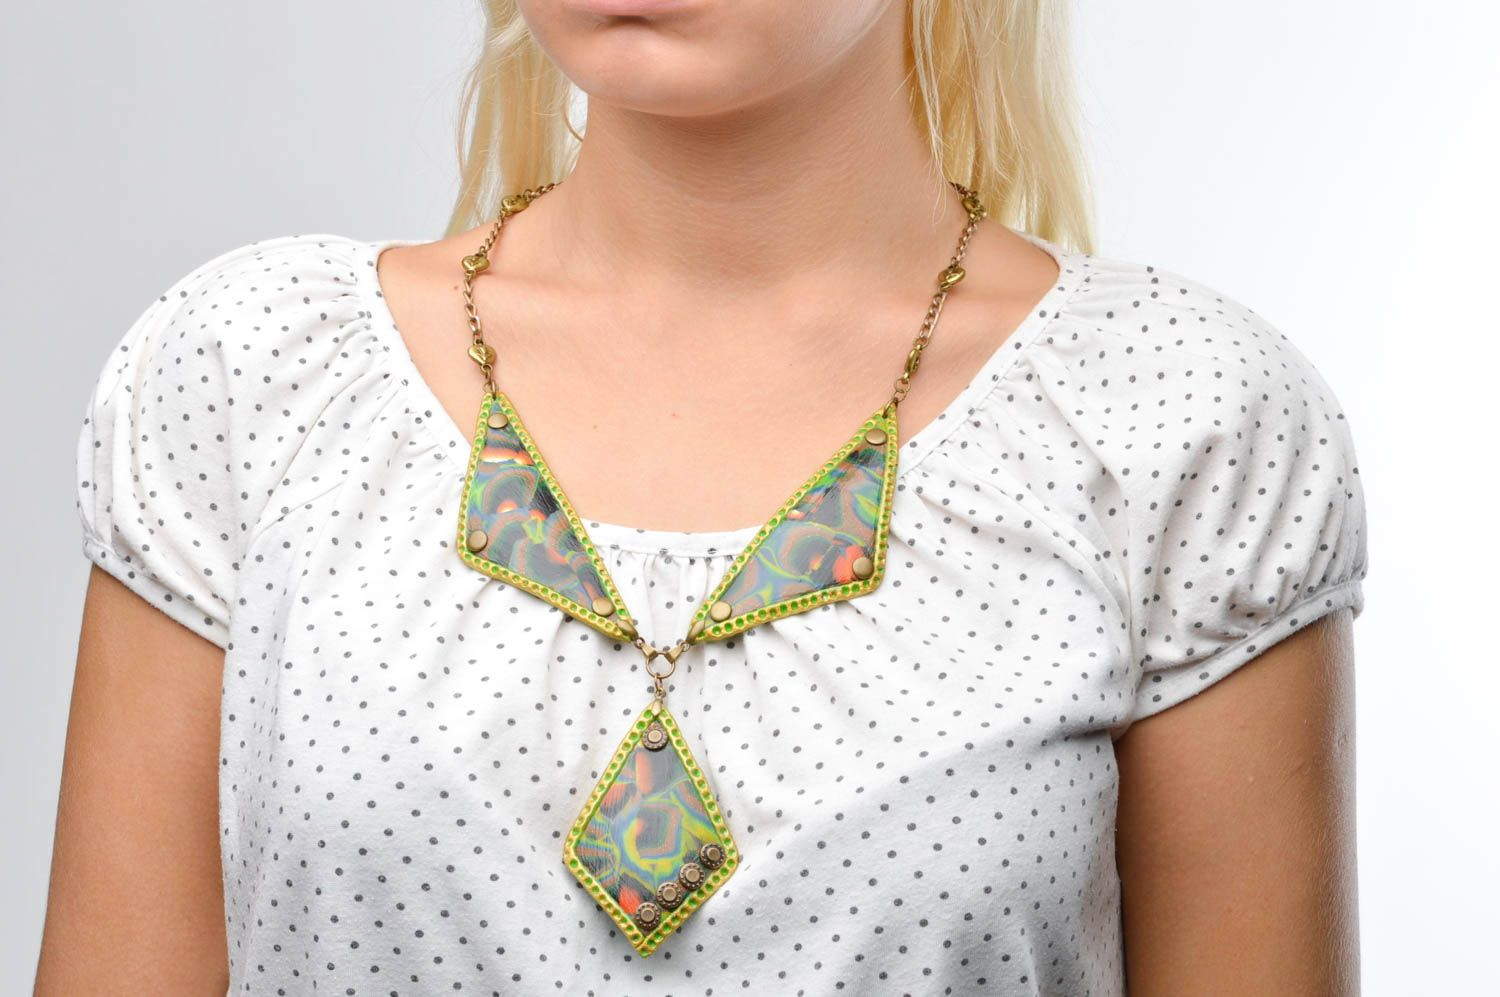 Massive handmade plastic necklace cool jewelry accessories for girls gift ideas photo 3